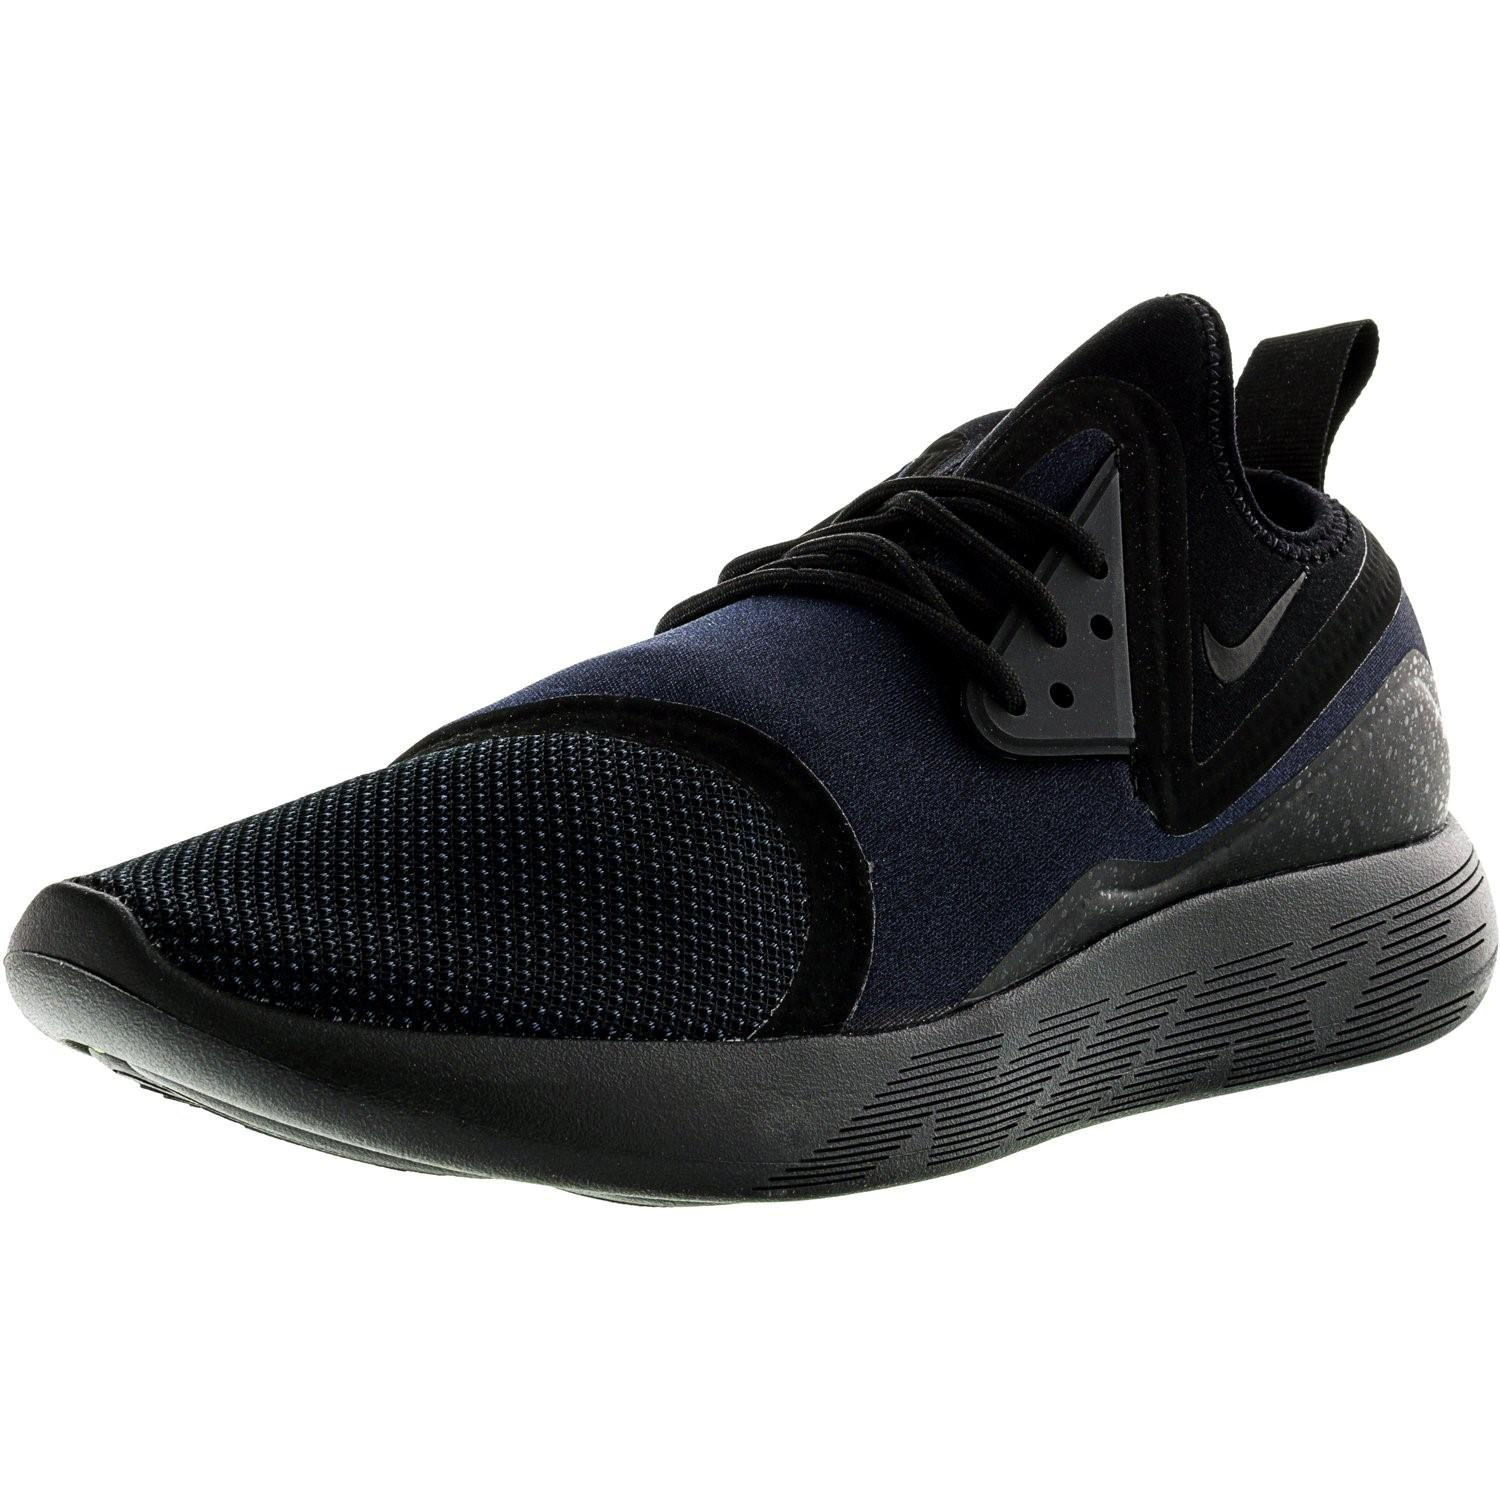 Nike Mens Lunarcharge Essential Round Toe Training Running